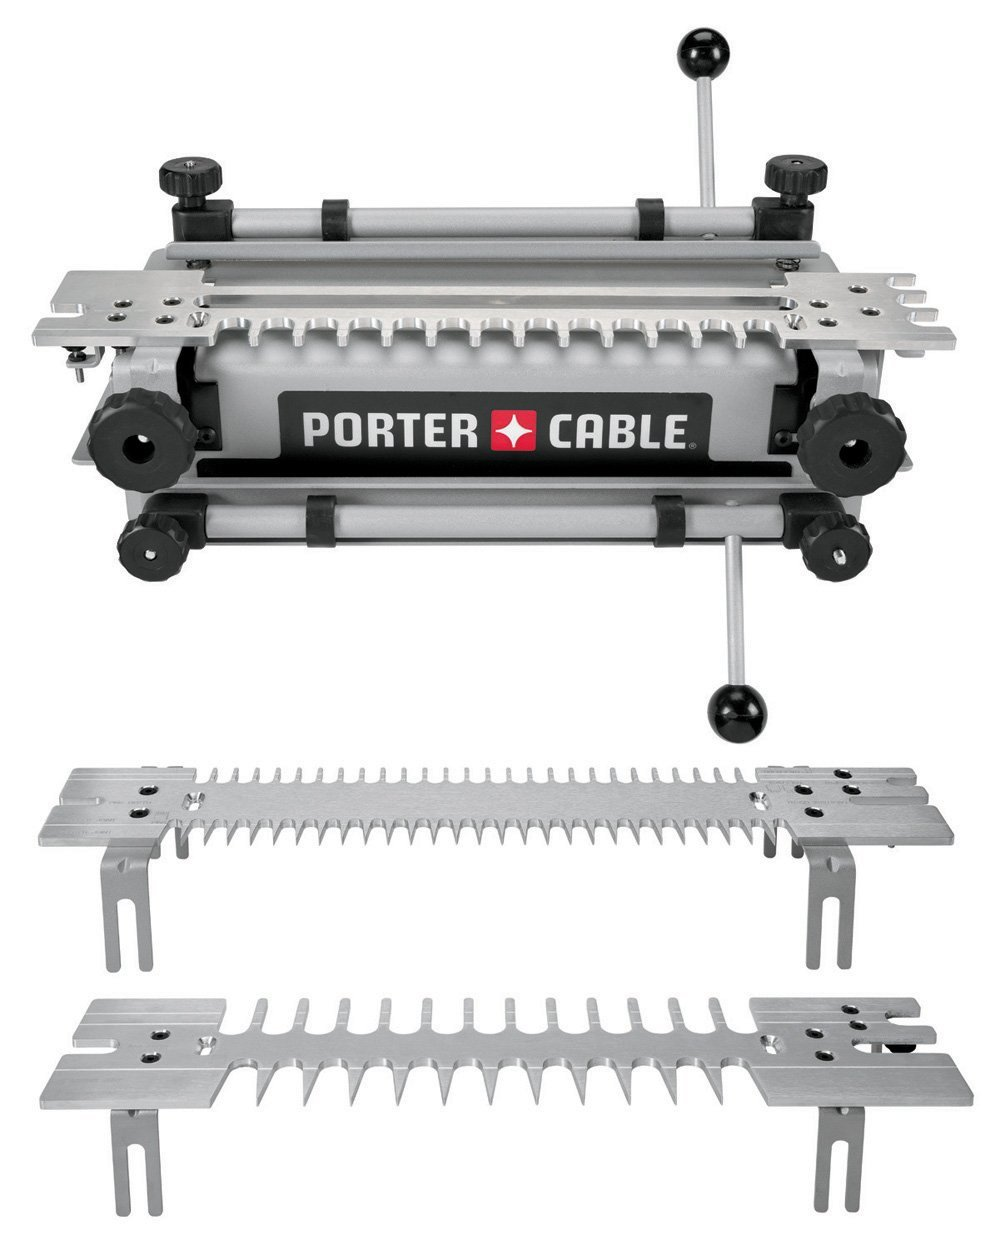 Porter-Cable 4216 Super Jig - Dovetail Jig